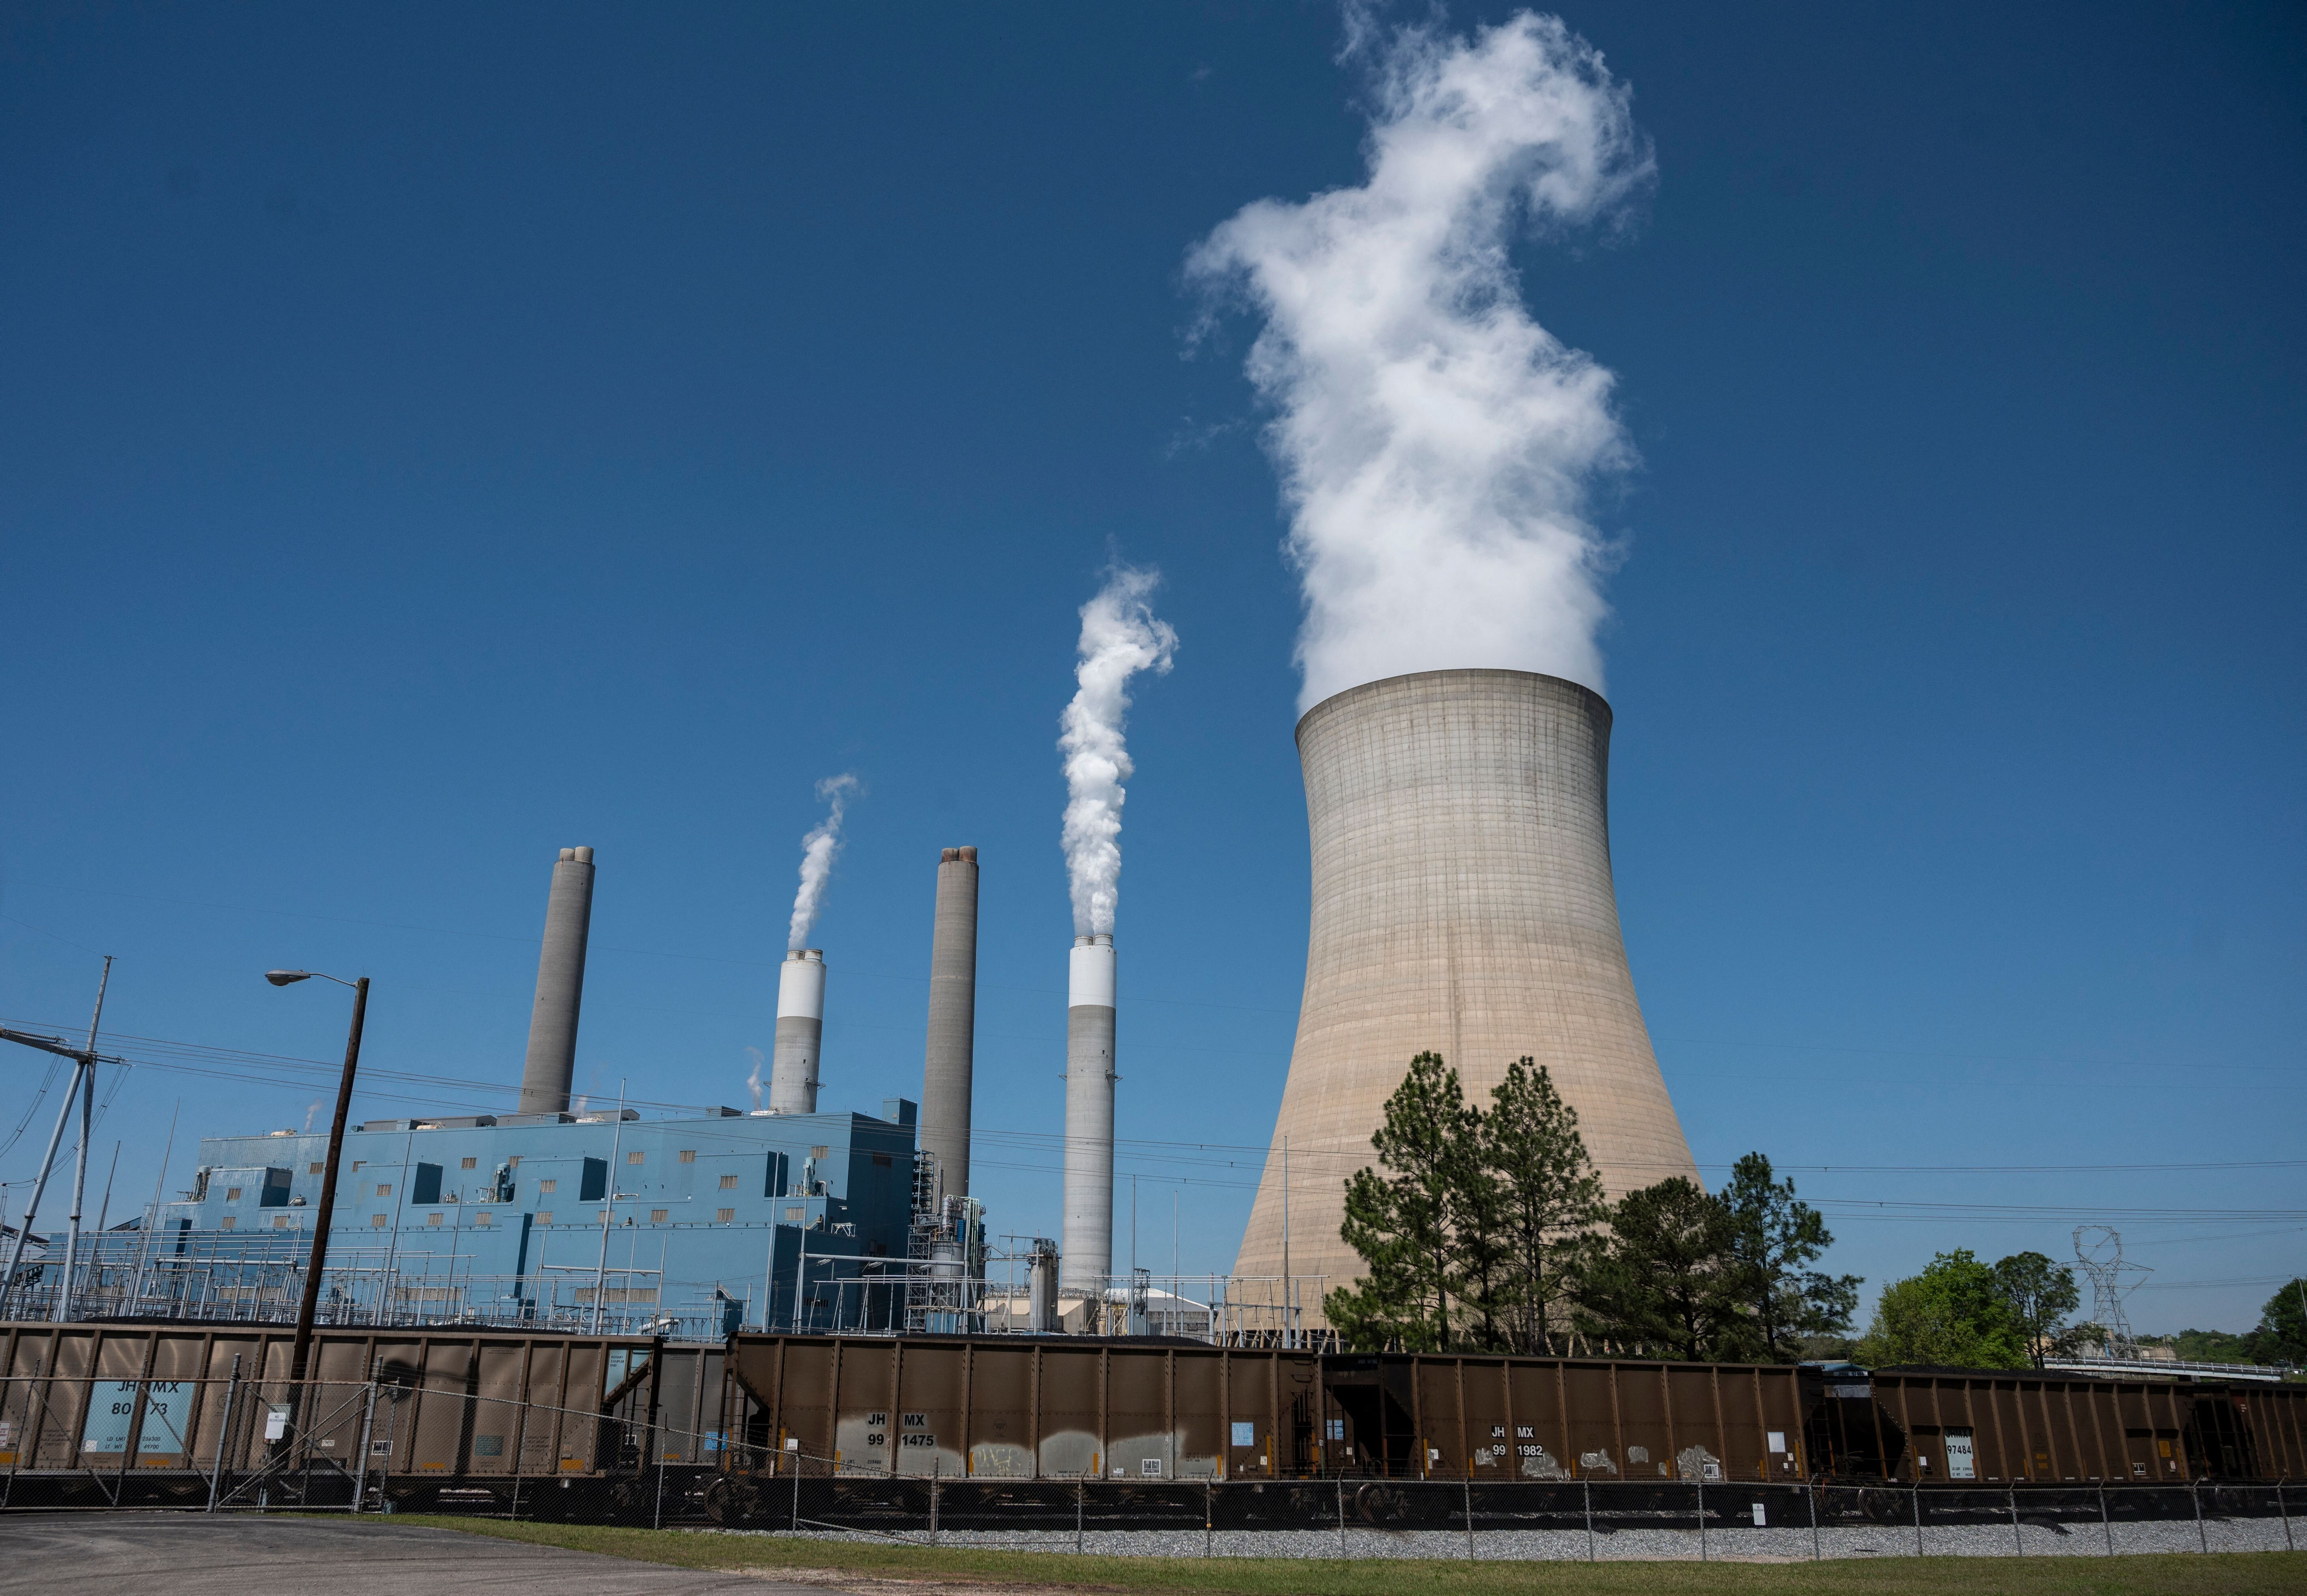 Steam rises from the Miller coal Power Plant in Adamsville, Alabama, on April 13. Power stations like this would likely need